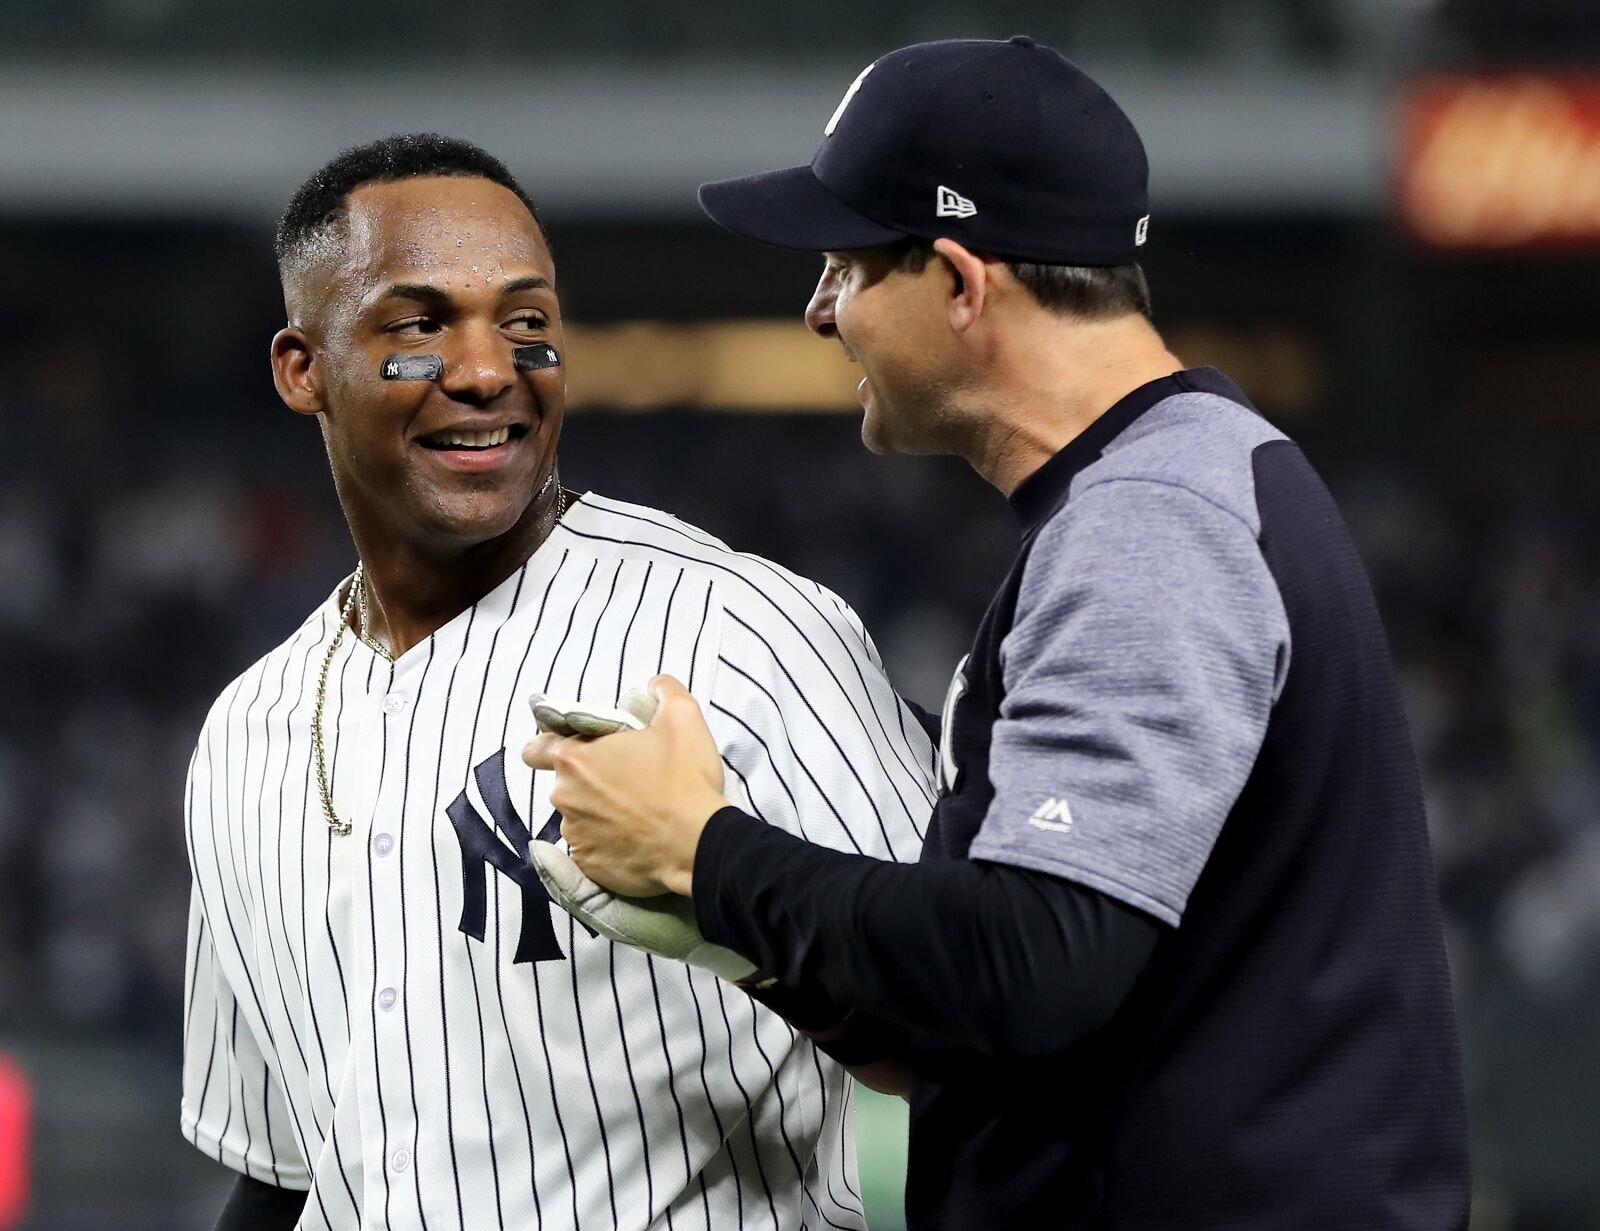 Yankees: Aaron Boone says Miguel Andujar should be healthy by spring training